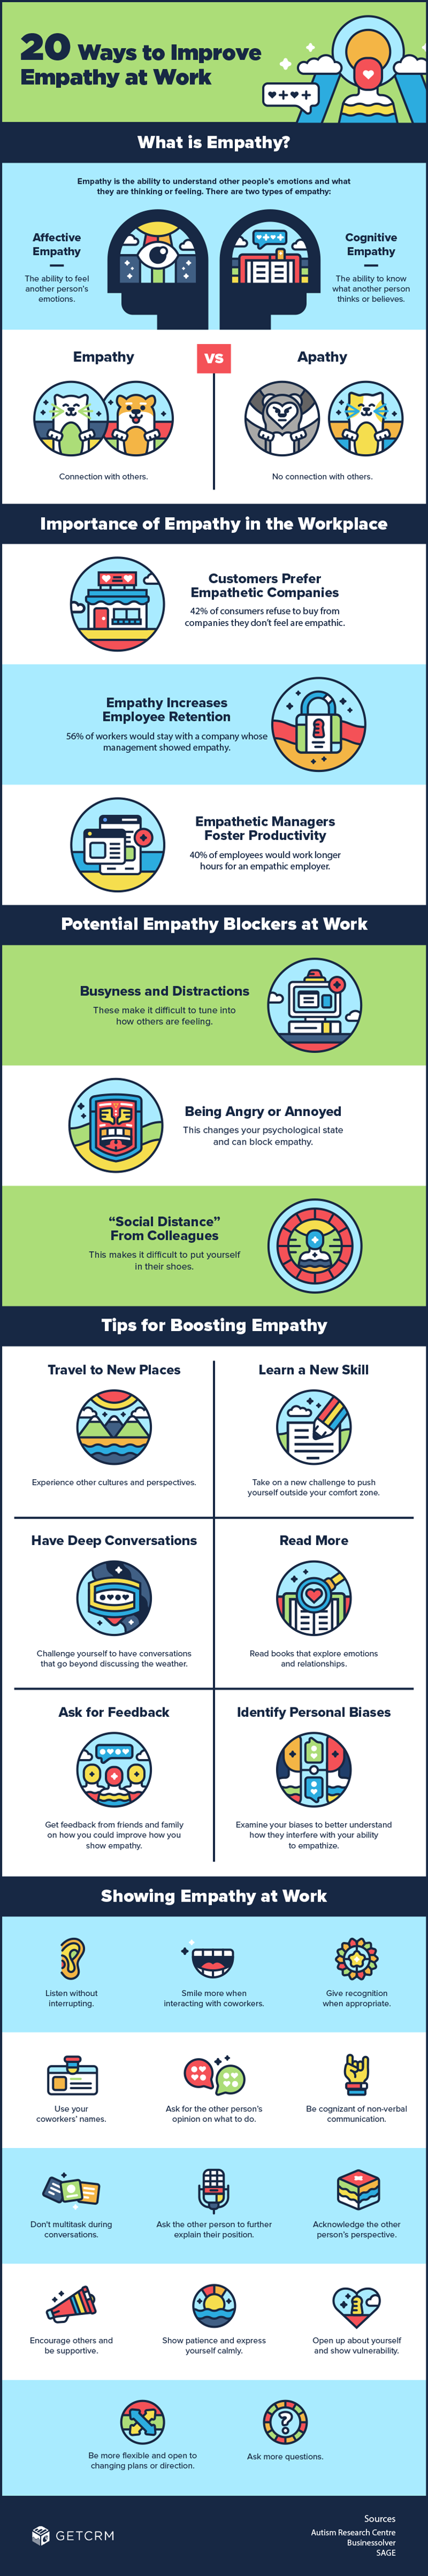 Infographic 20 Ways to Improve Empathy and Build Better Relationships at Work